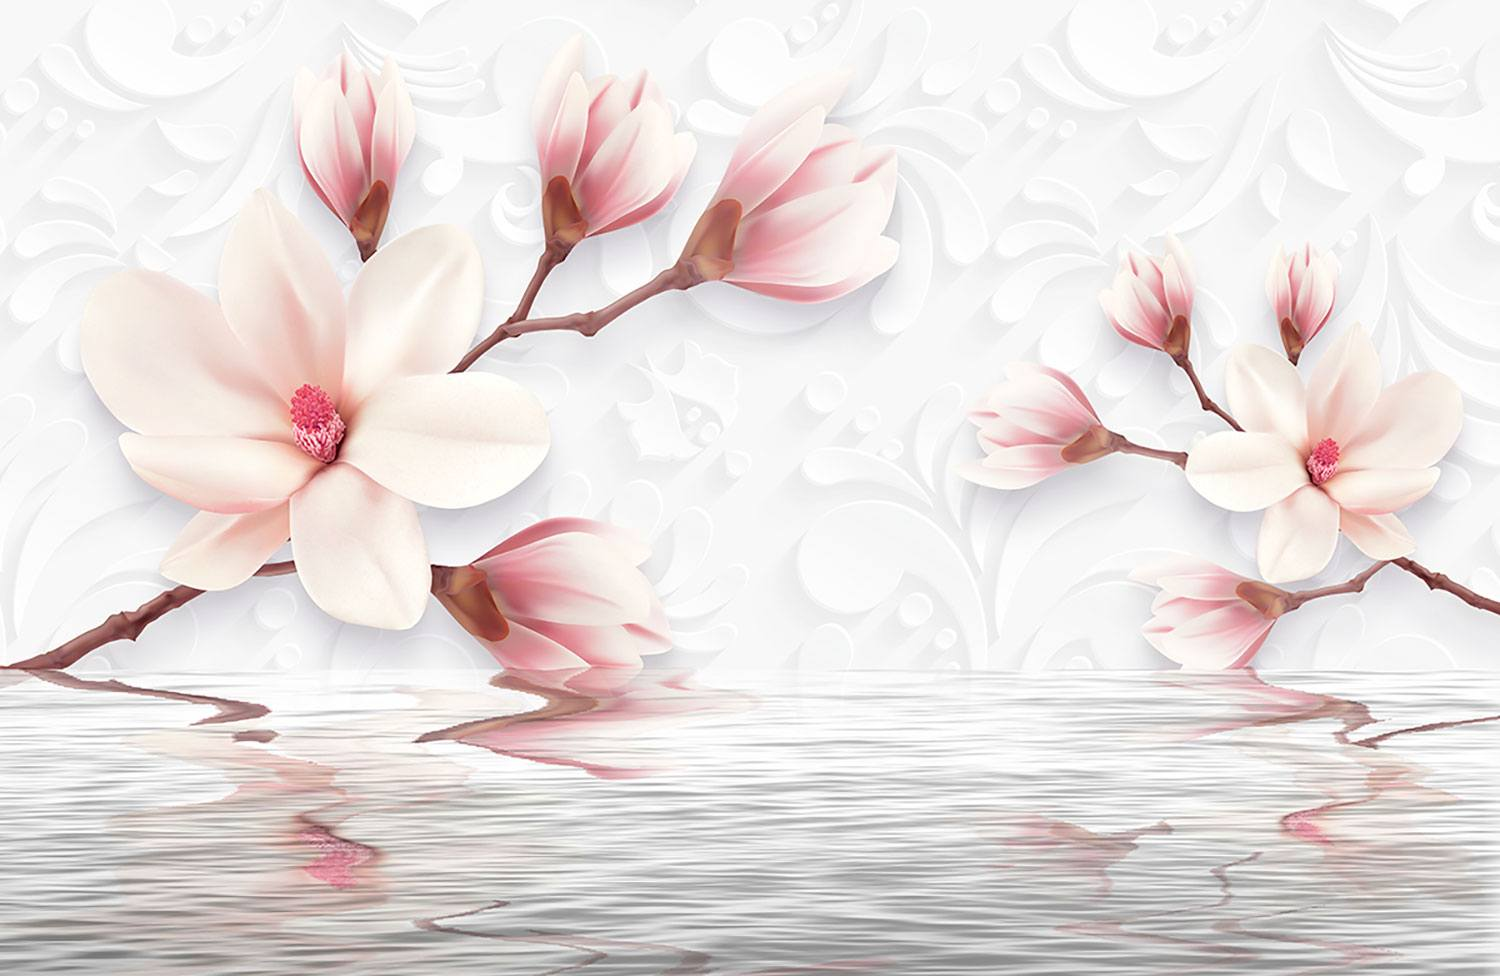 Wall Murals: Flowers sprouting from the water